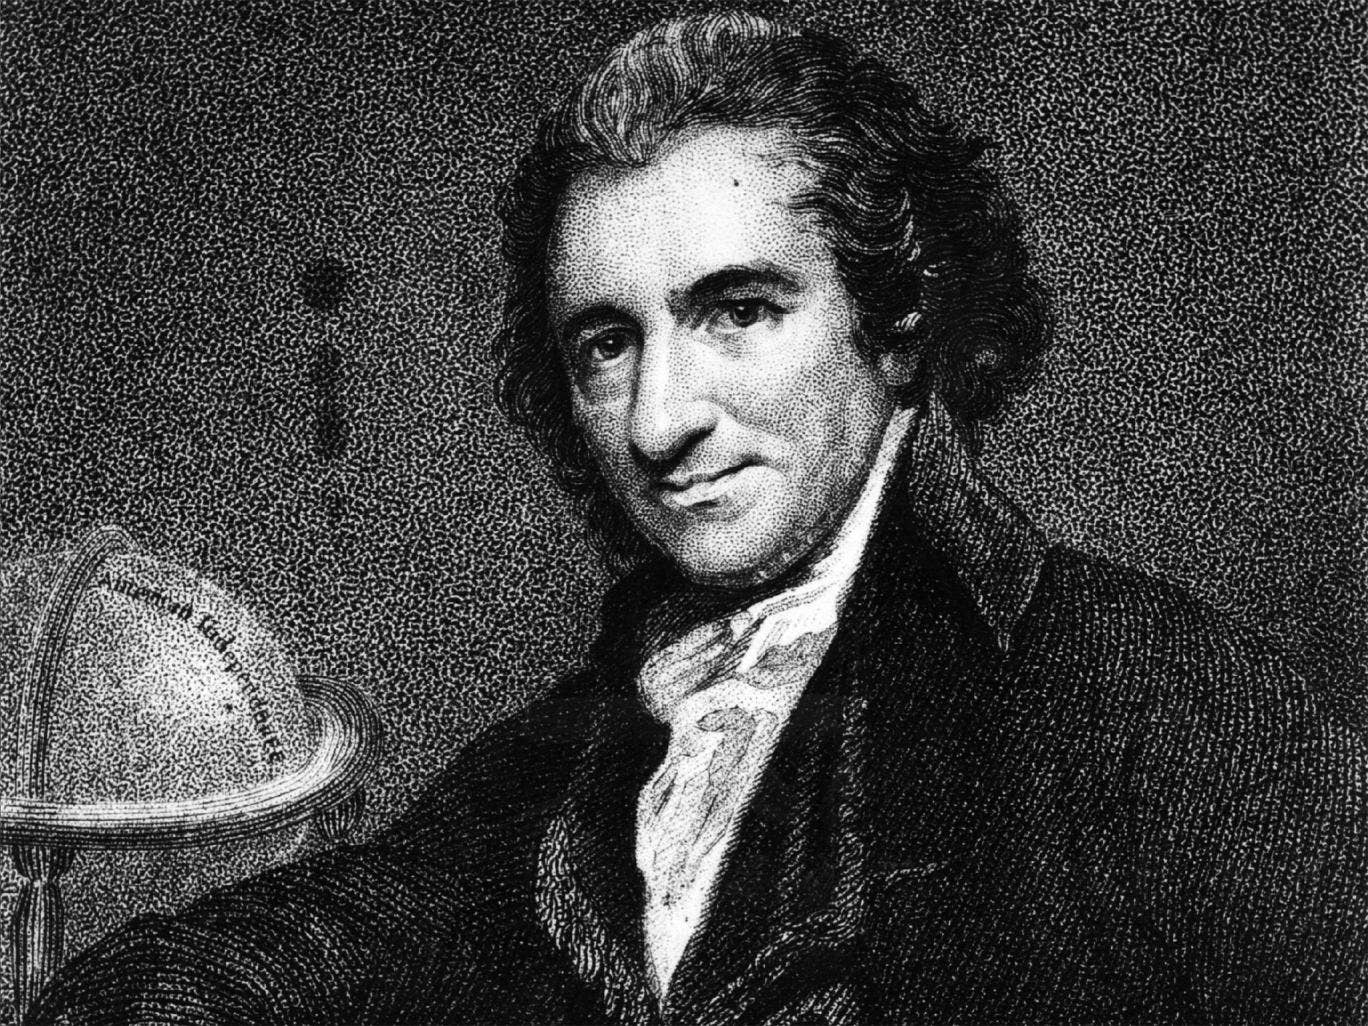 Thomas Paine's Rights of Man Essay